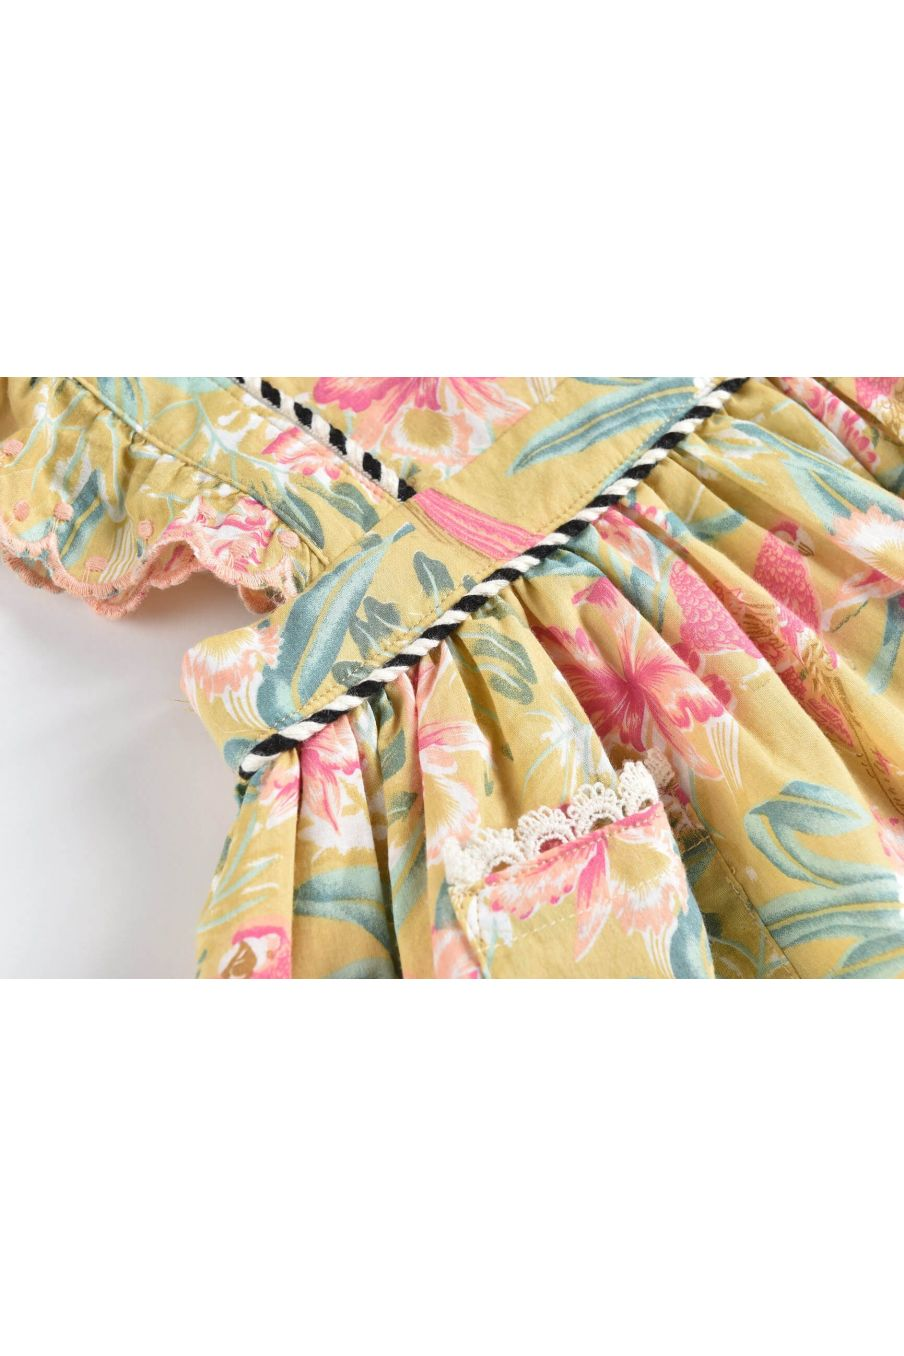 boheme chic vintage robe bébé fille mistinguette soft honey parrots